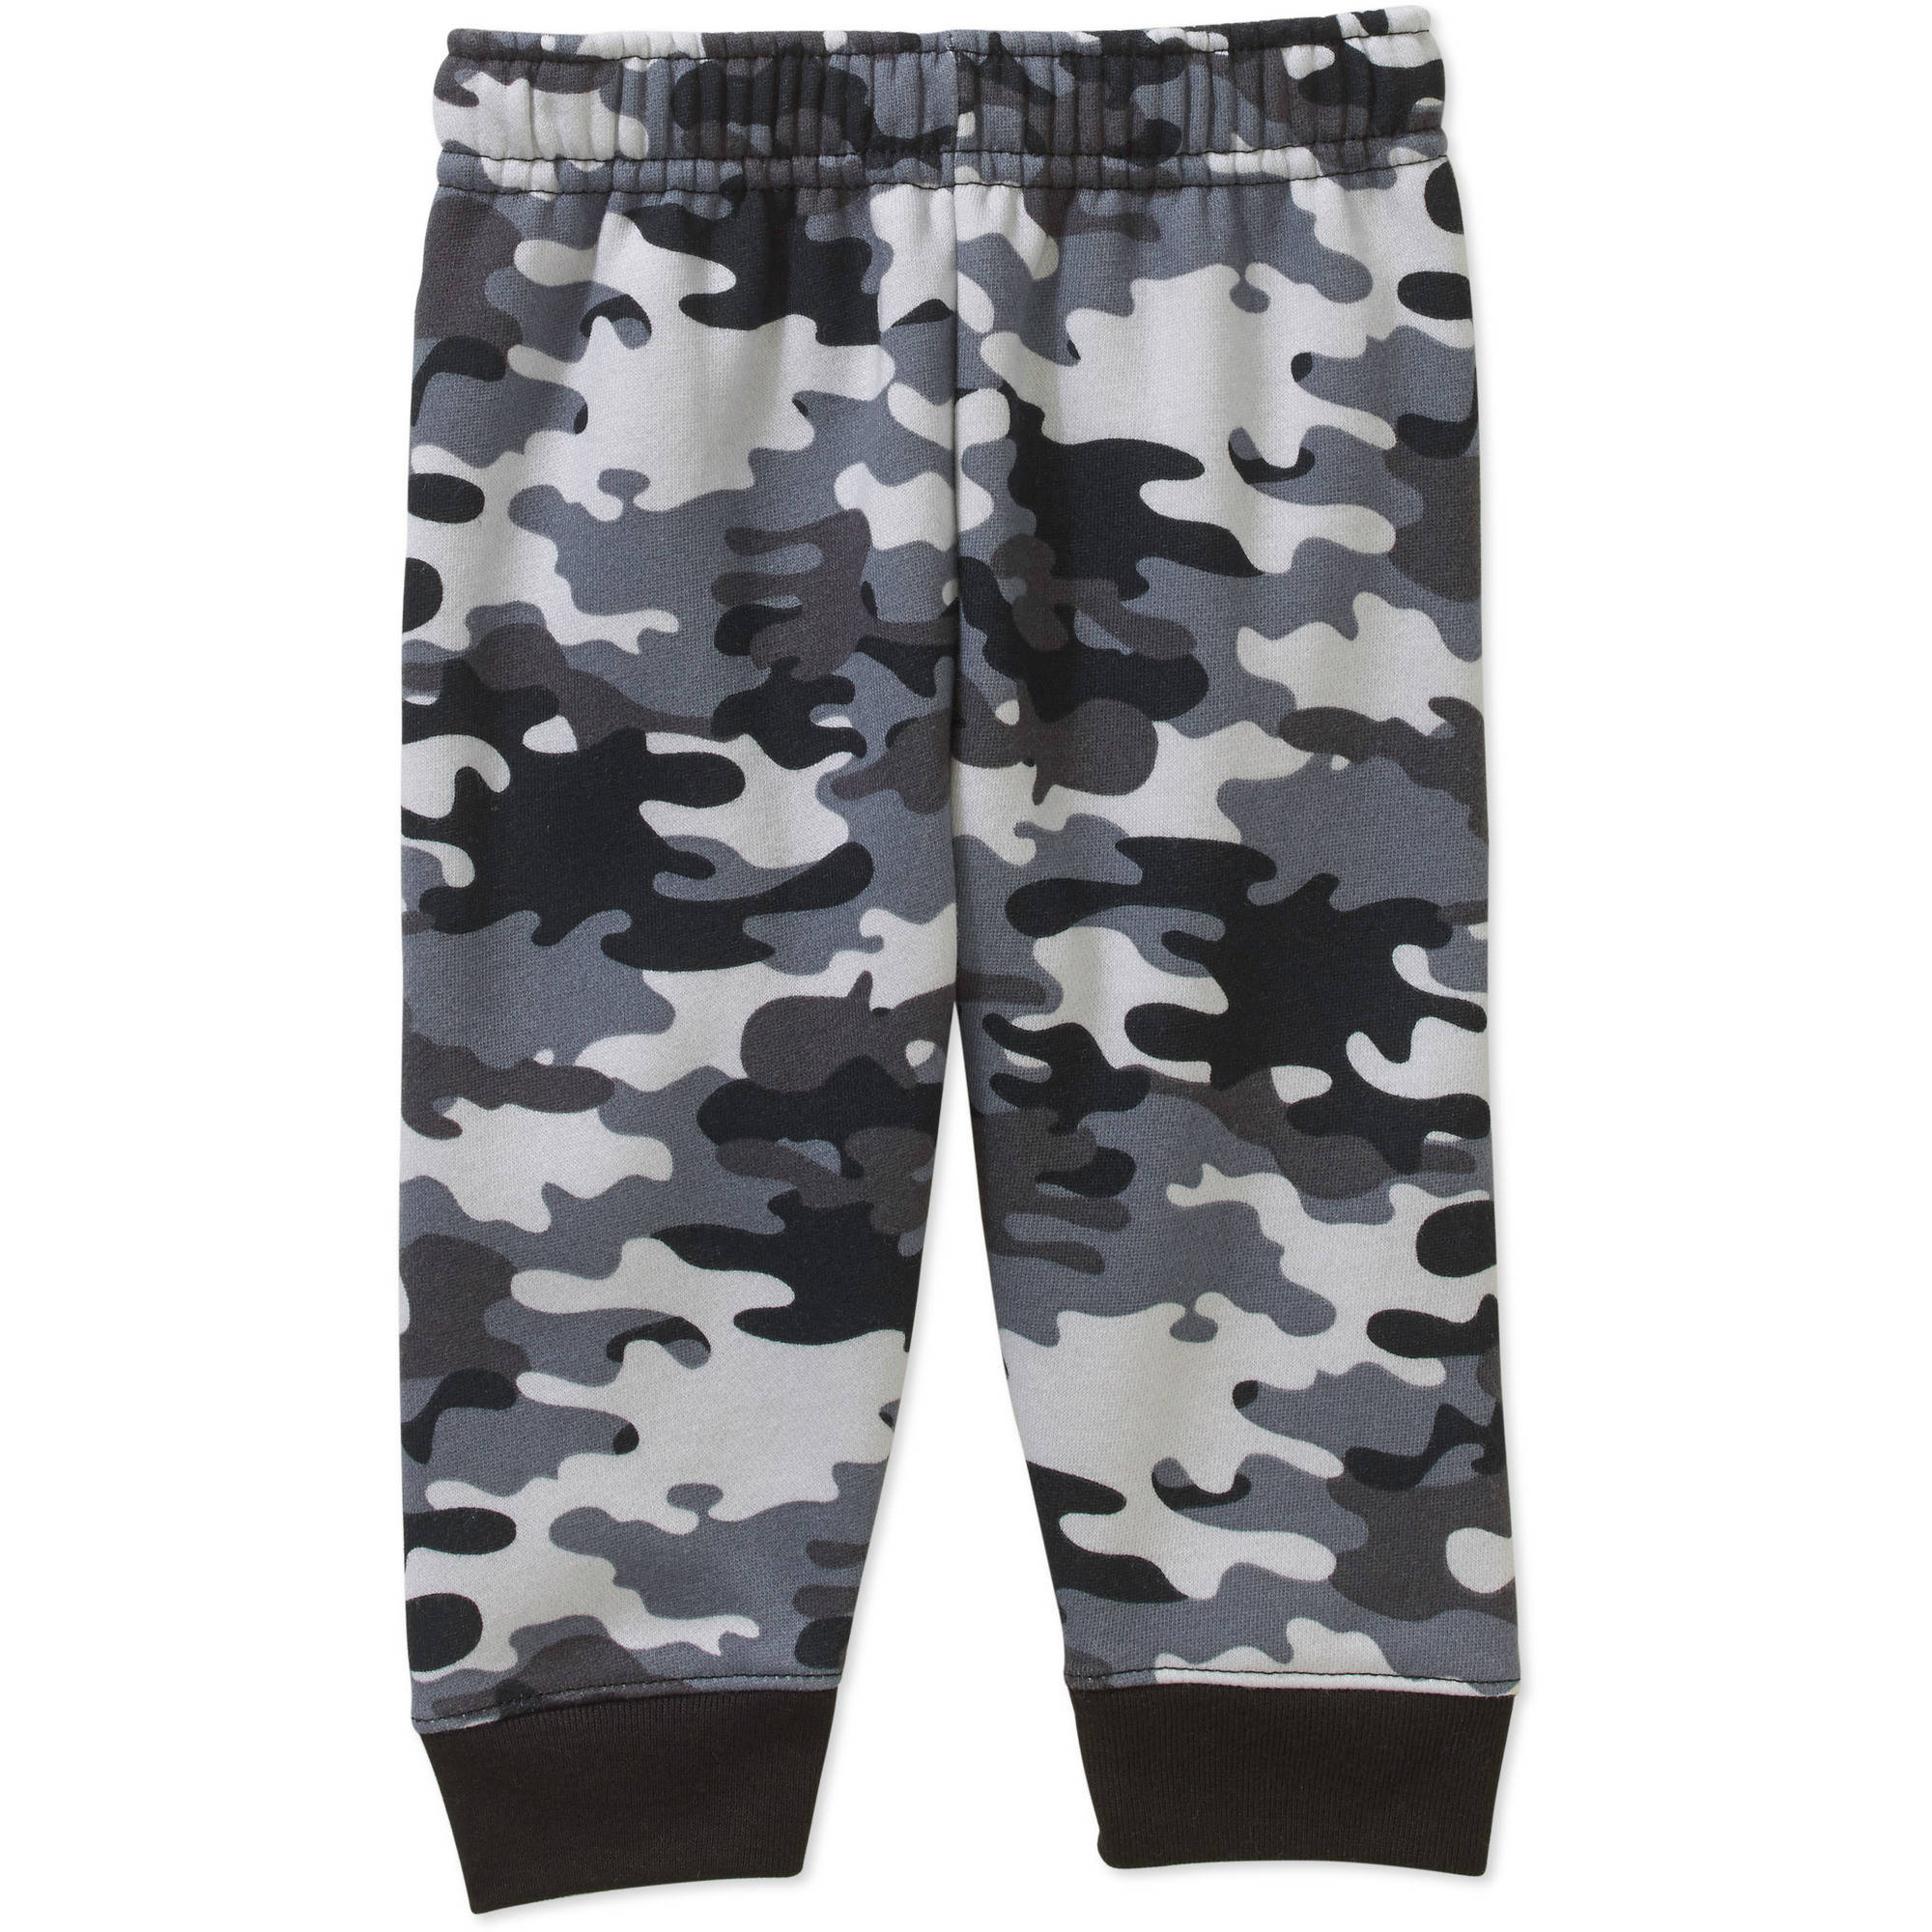 Garanimals Newborn Baby Boys' Print Fleece Joggers